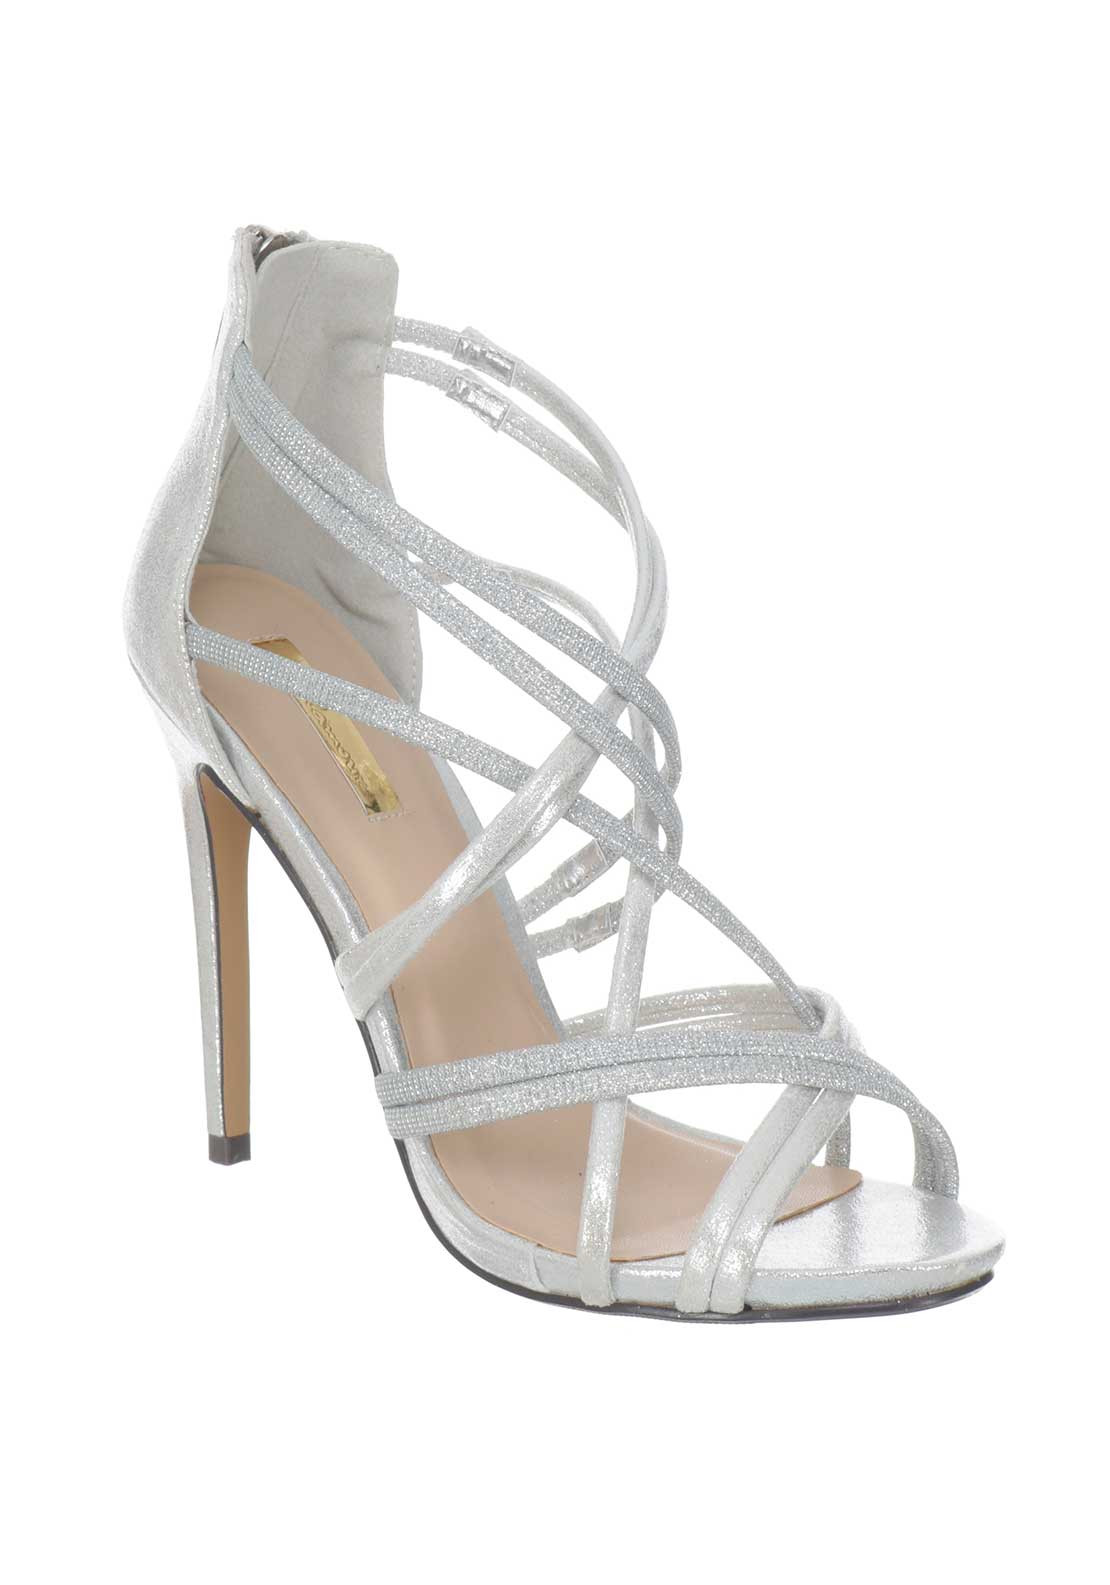 4a8949a6dcd51 Glamour Glitter Strappy Heeled Sandals, Silver | McElhinneys